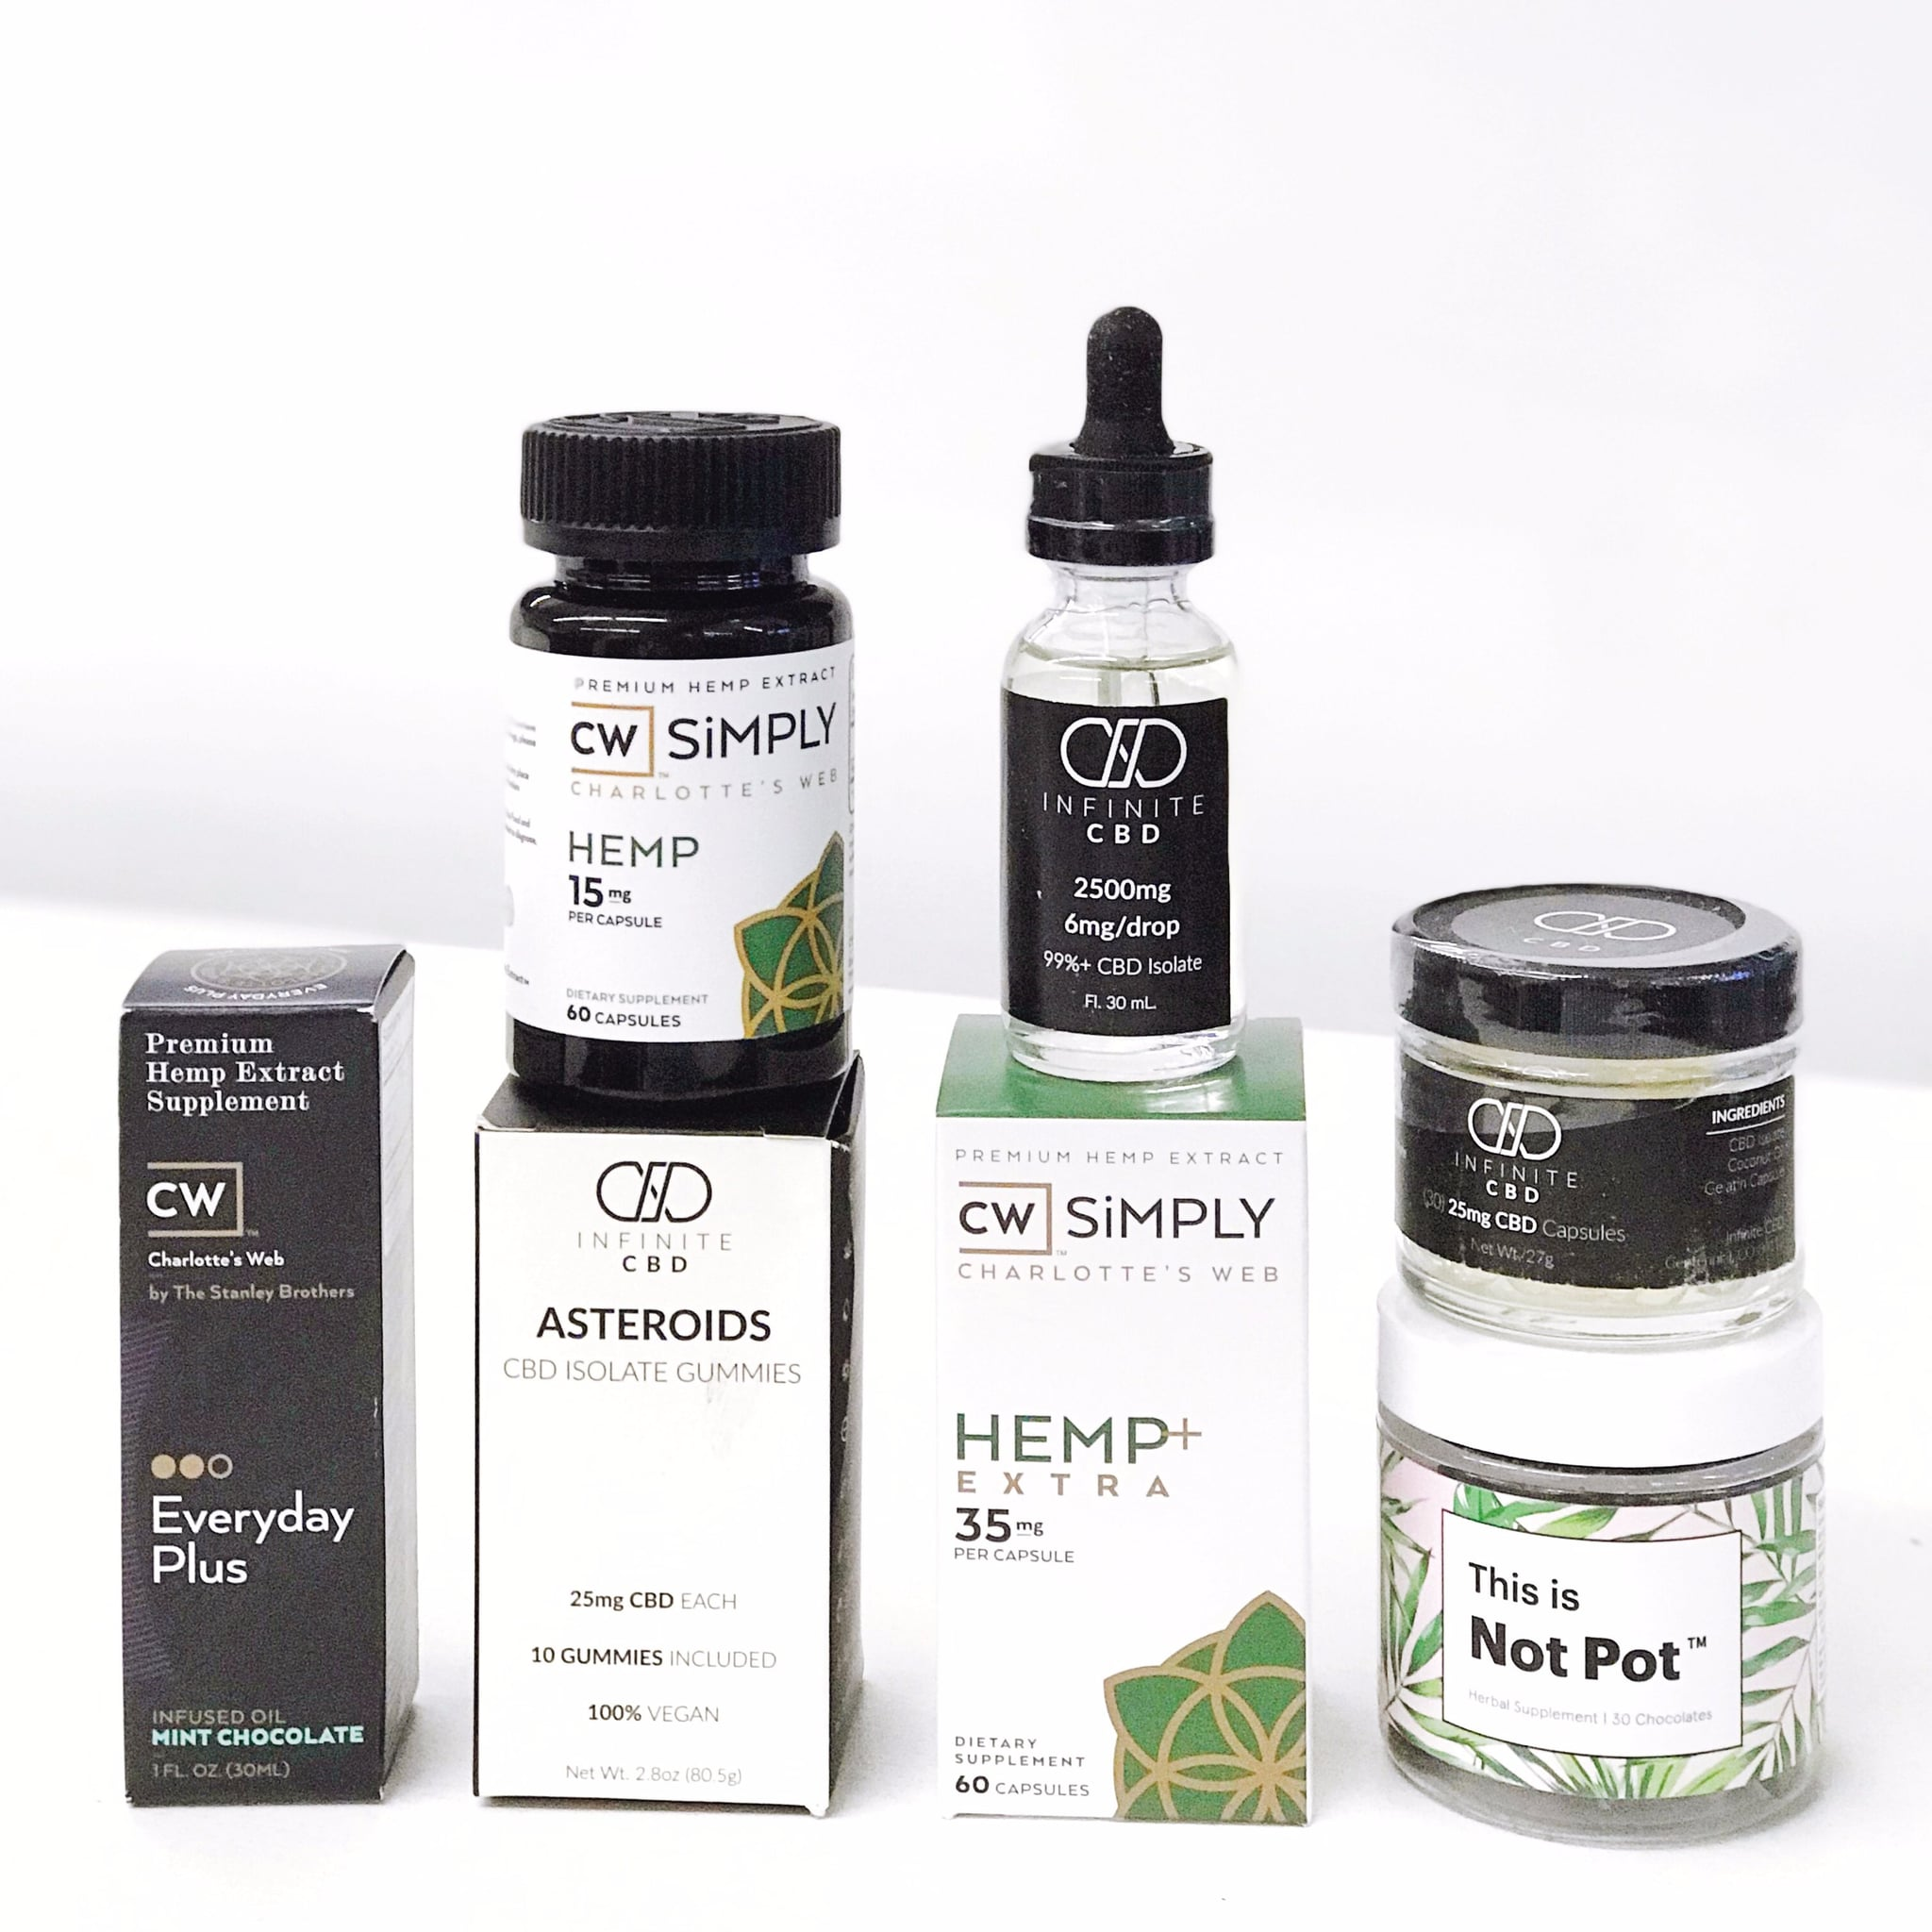 World Health Org Announces CBD Has No Health Risks